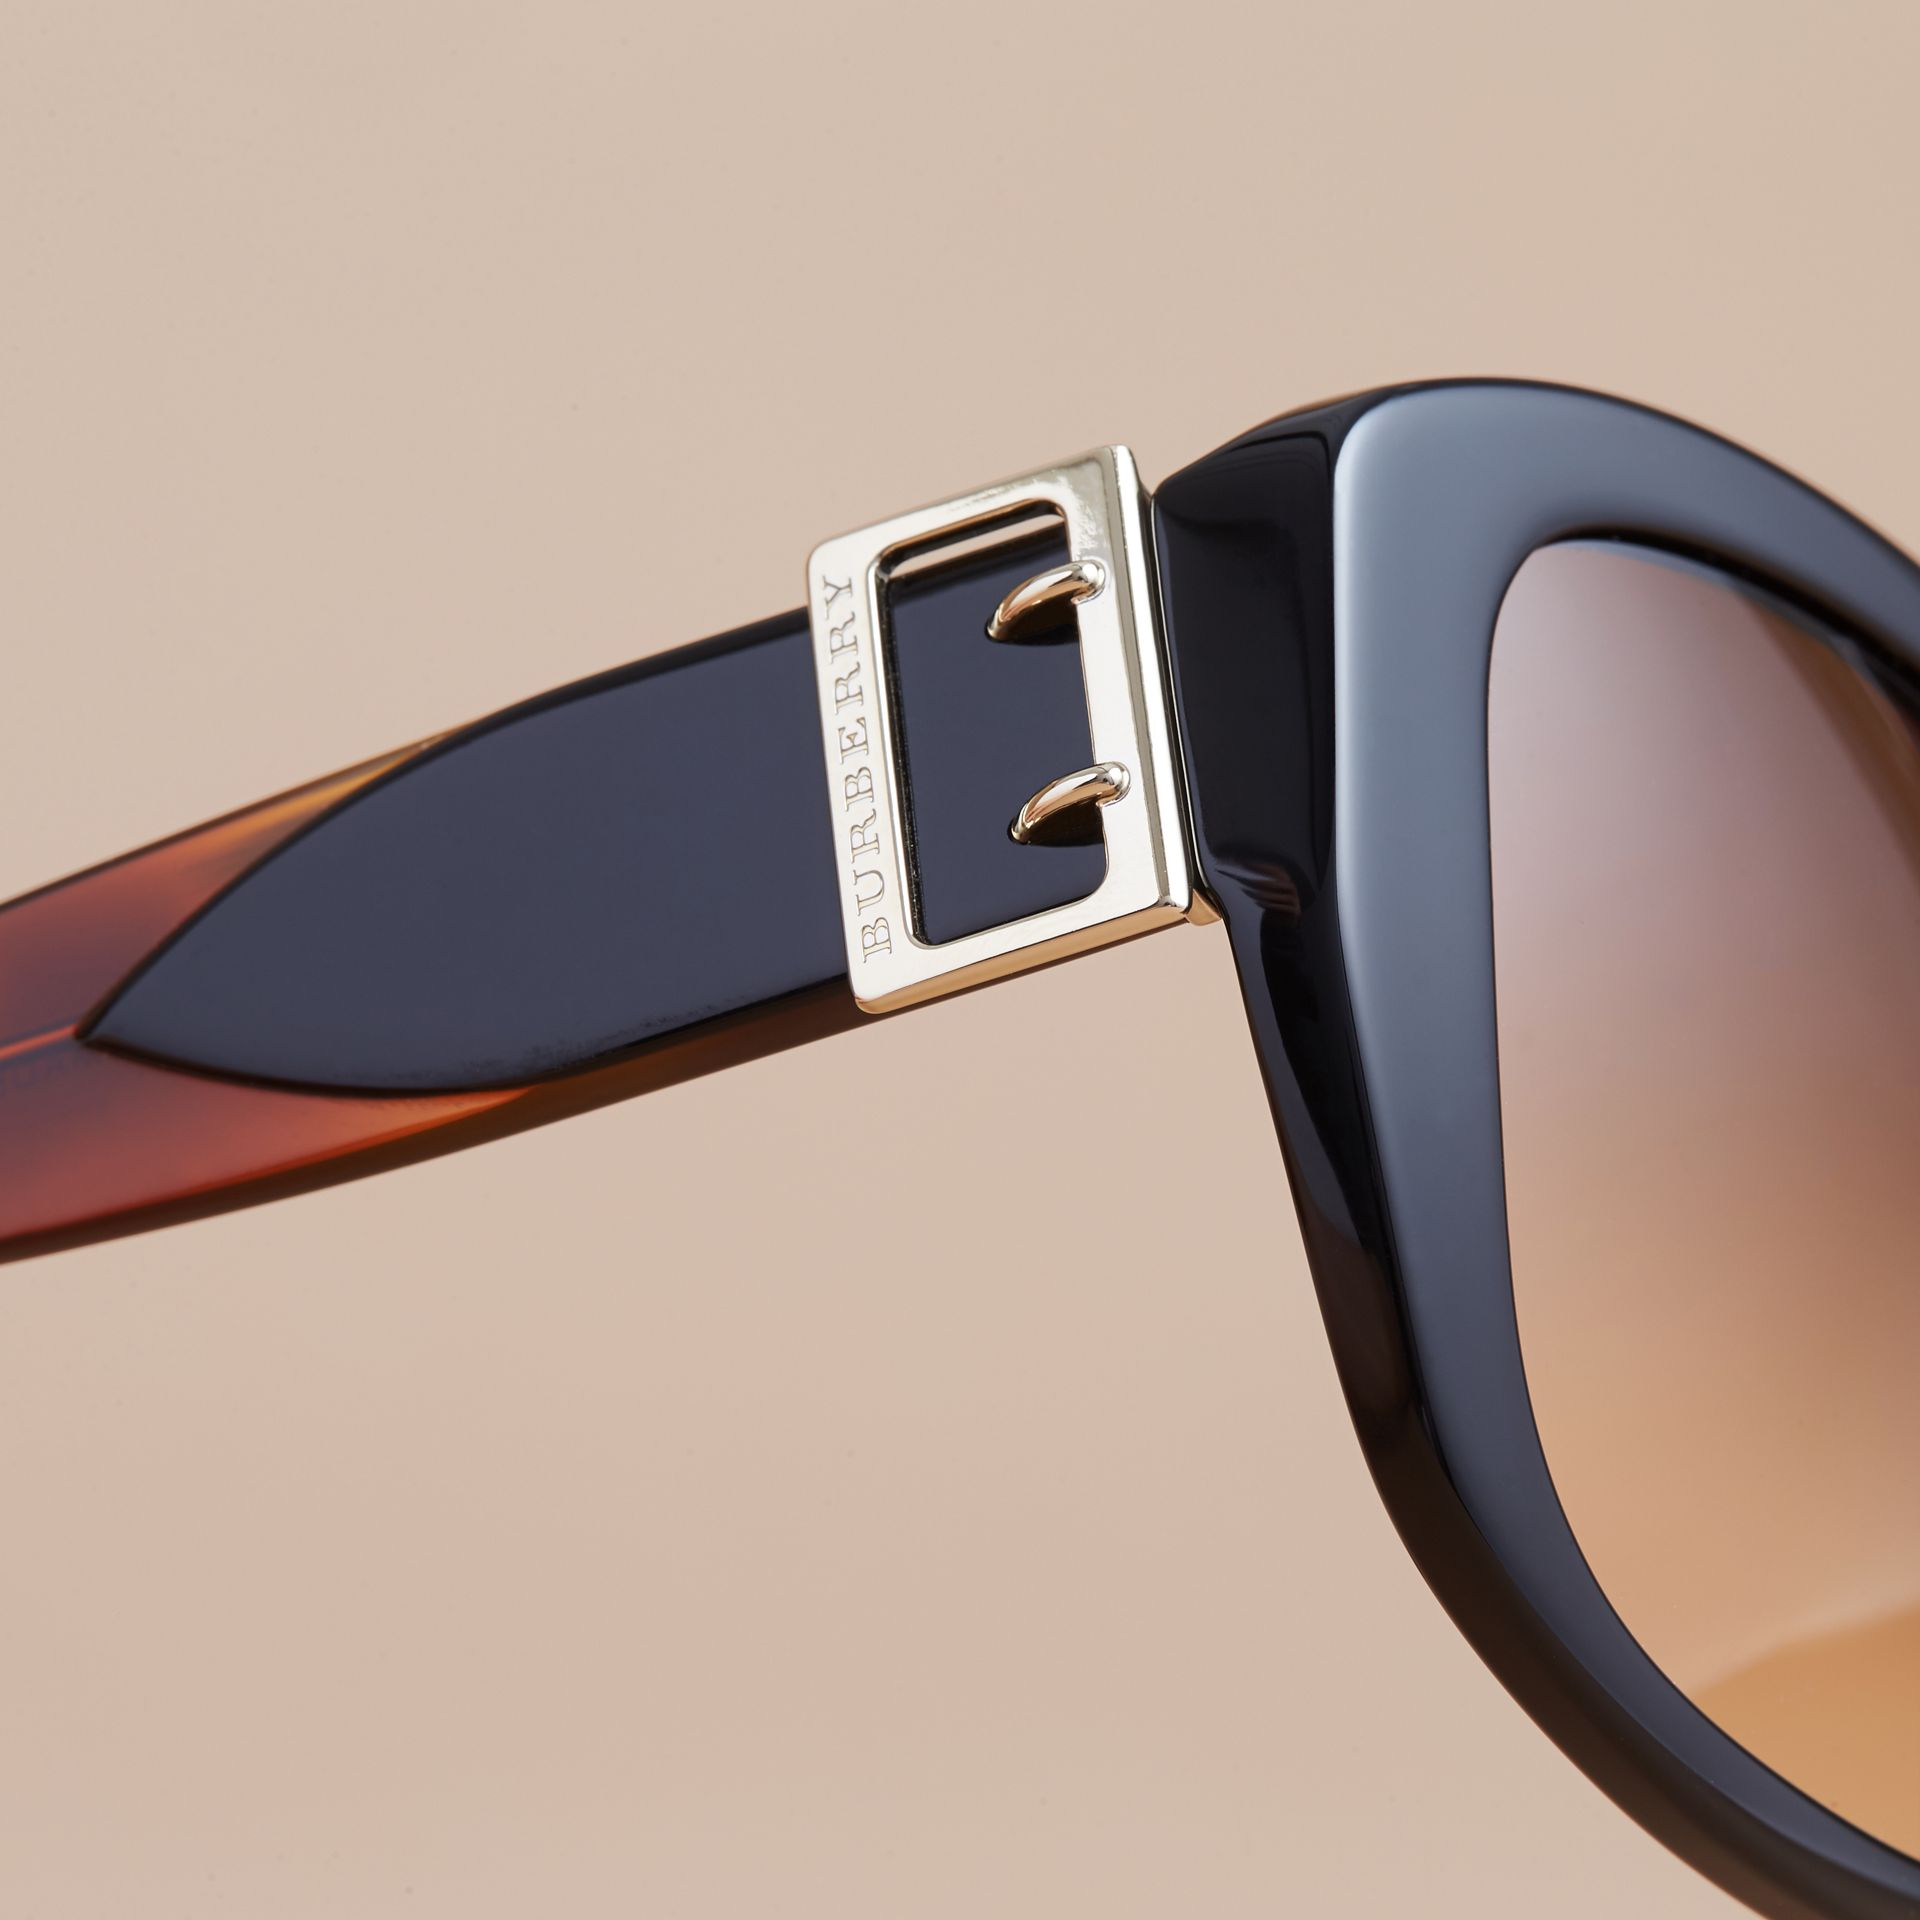 Buckle Detail Oversize Square Frame Sunglasses in Black - Women | Burberry Australia - gallery image 1